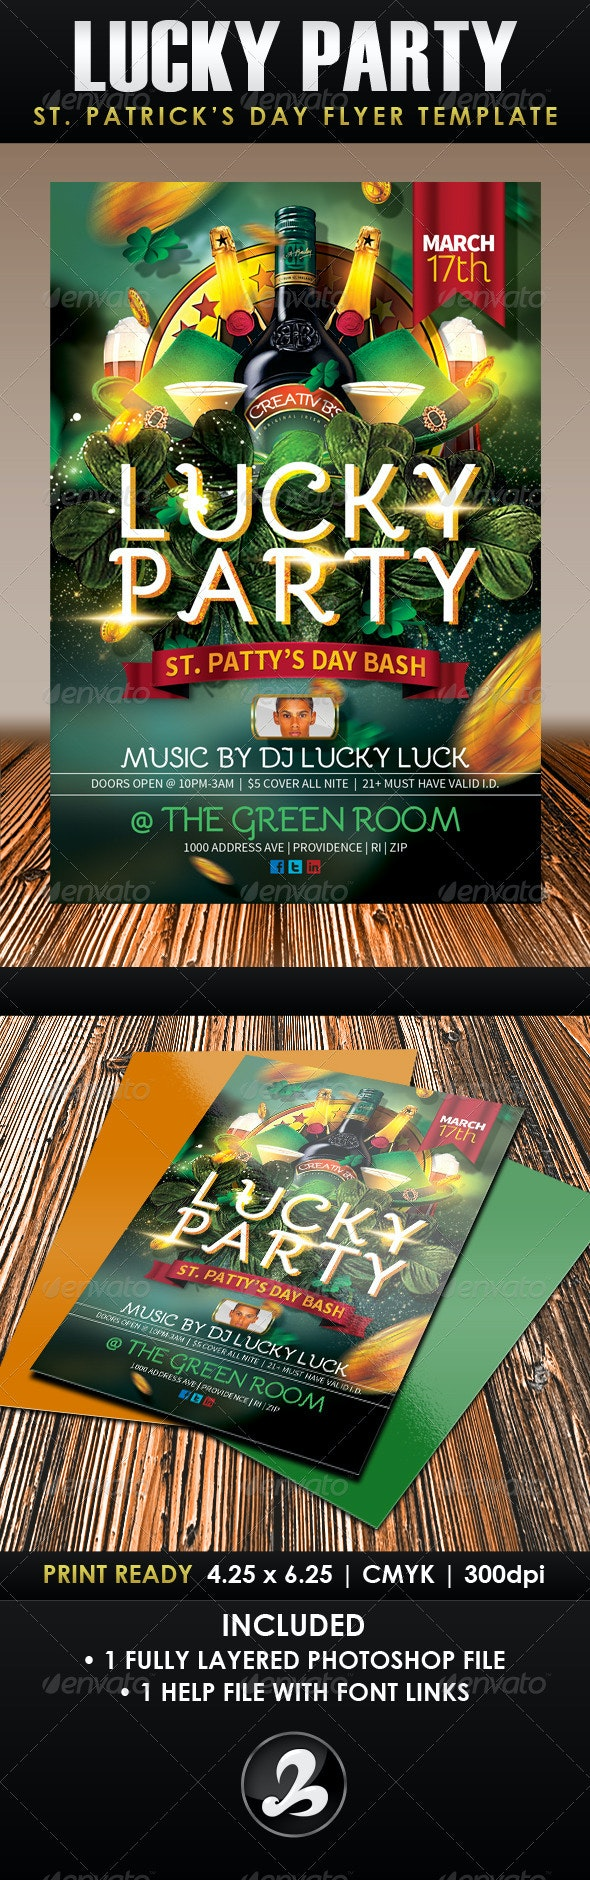 Lucky Party St. Patrick's Day Flyer Template - Holidays Events